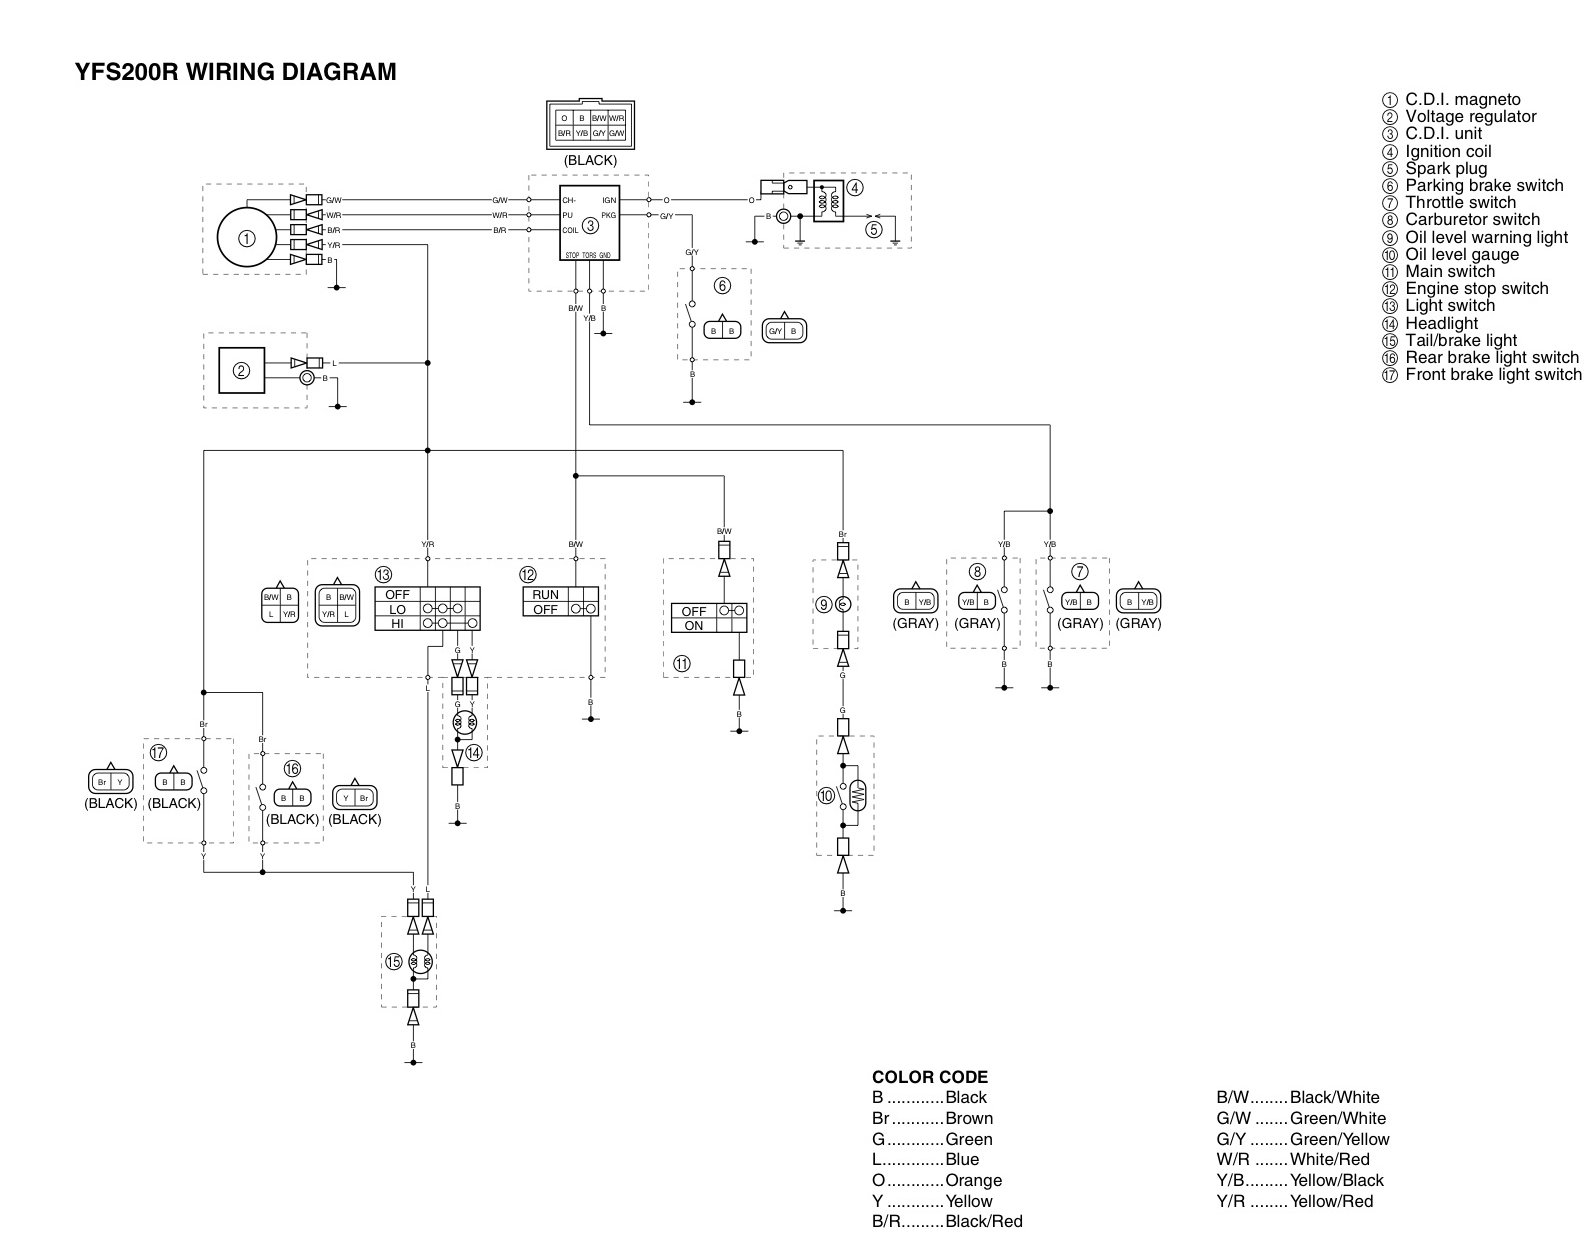 yamaha blaster wiring scamatic of yamaha blaster 200cc wiring diagram - wiring diagram yamaha blaster wiring diagram for ignition